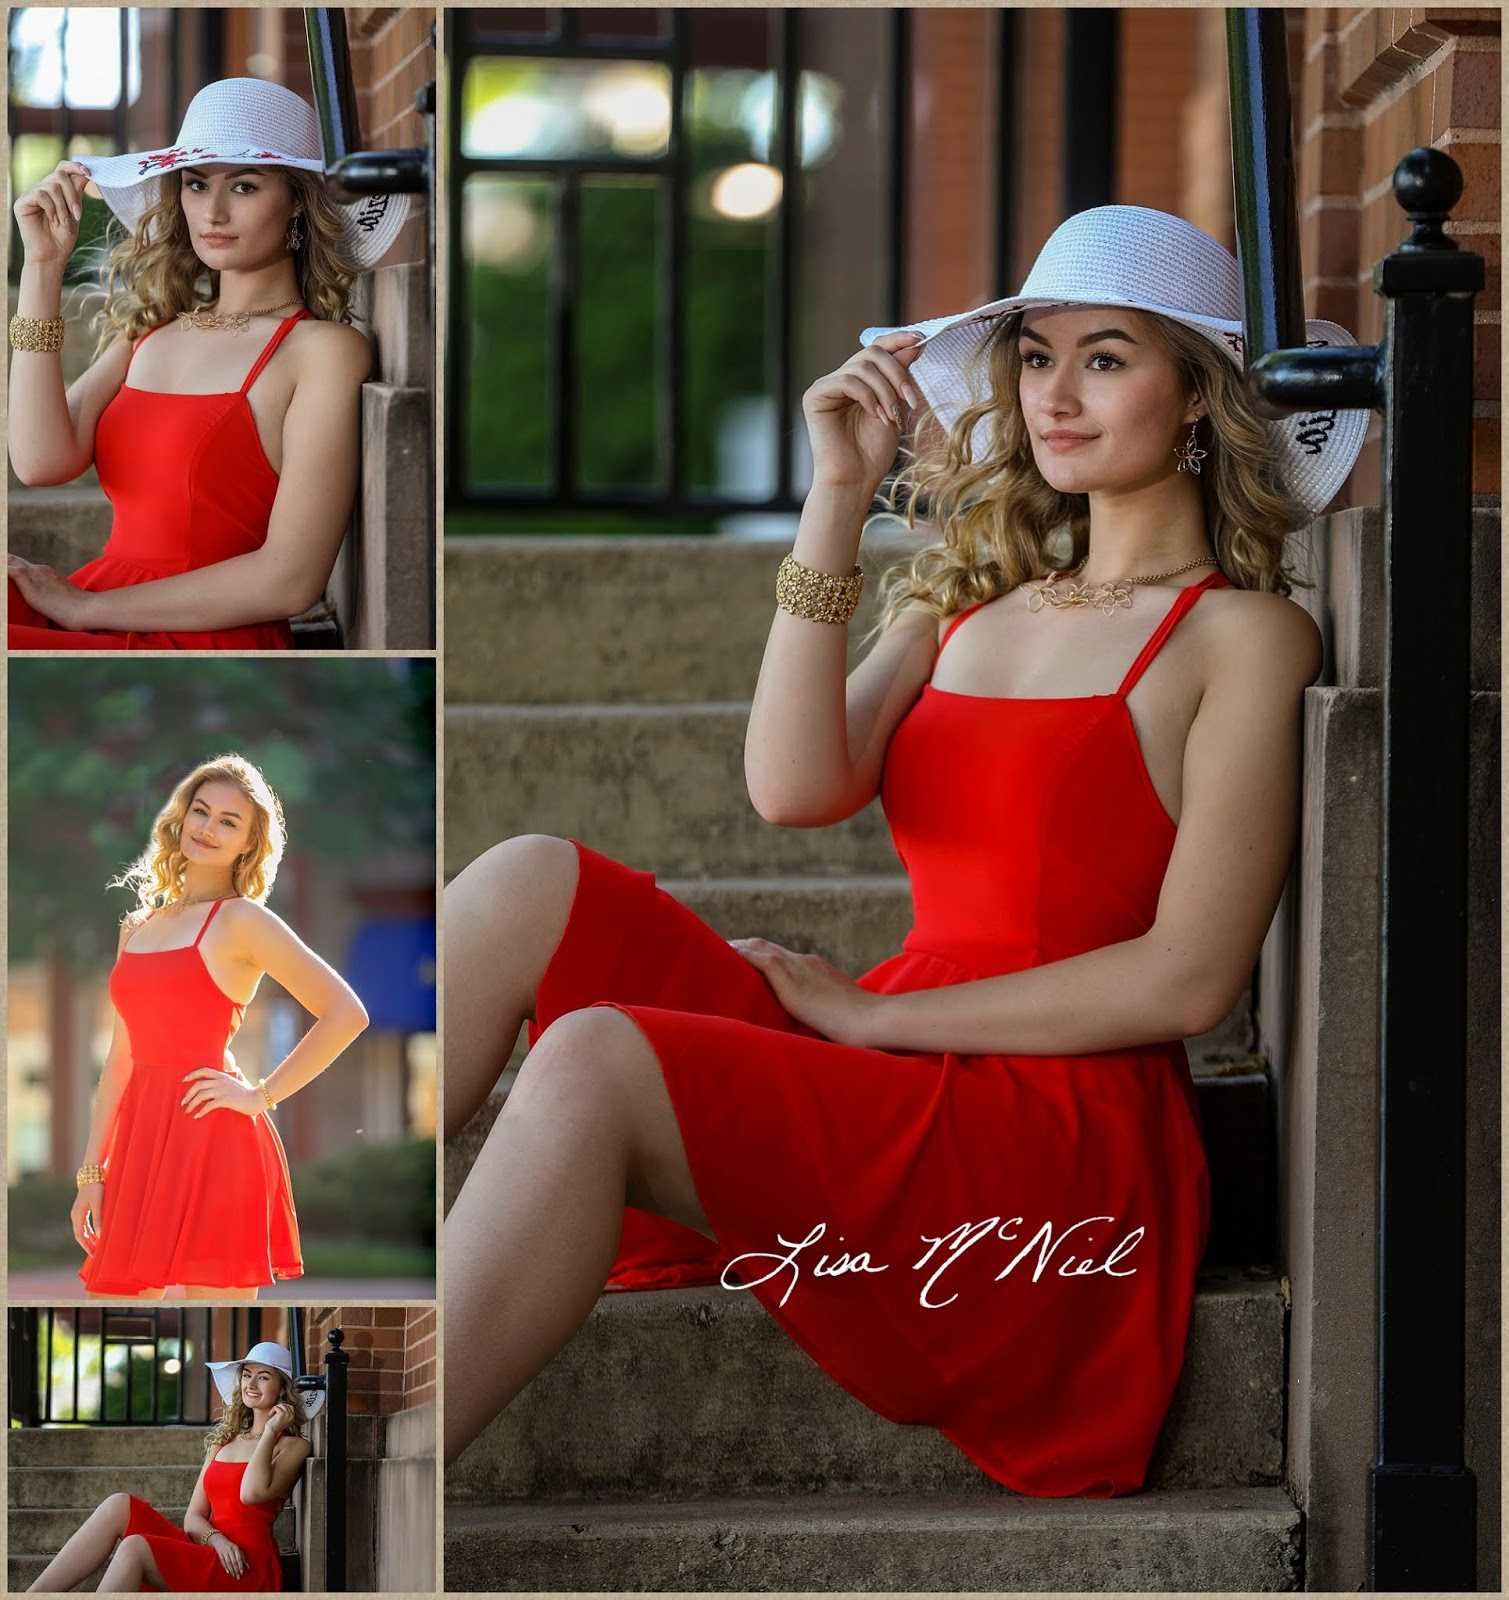 pretty blond teen in red dress with white hat